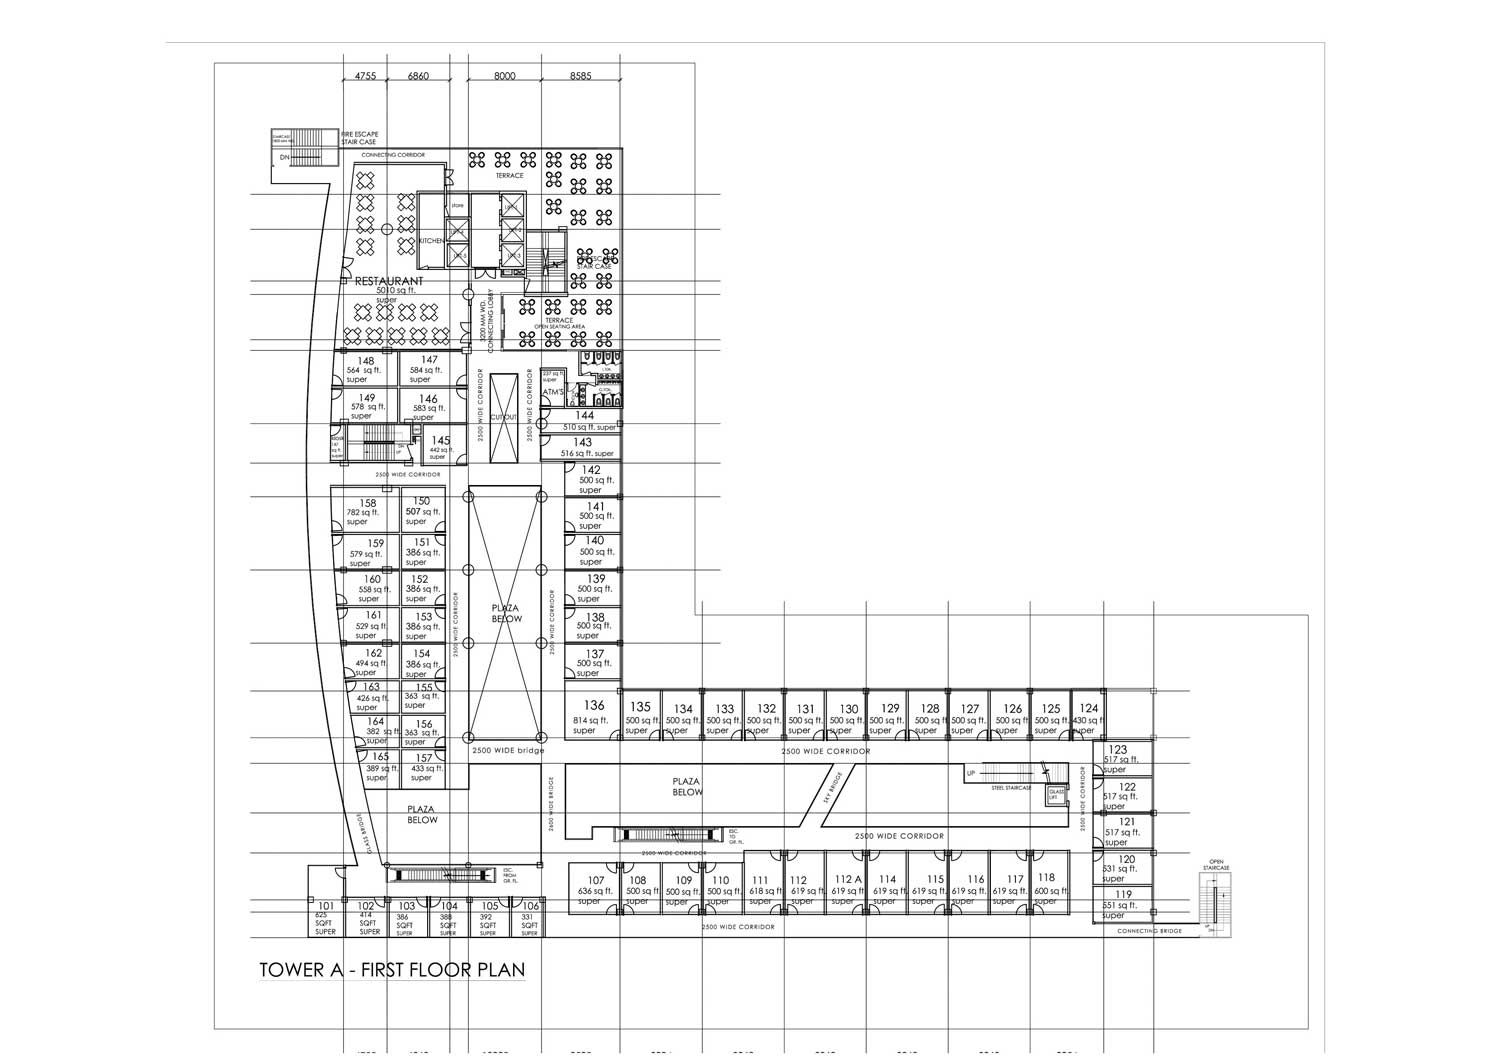 Spaze Corporate Park First Floor Plan